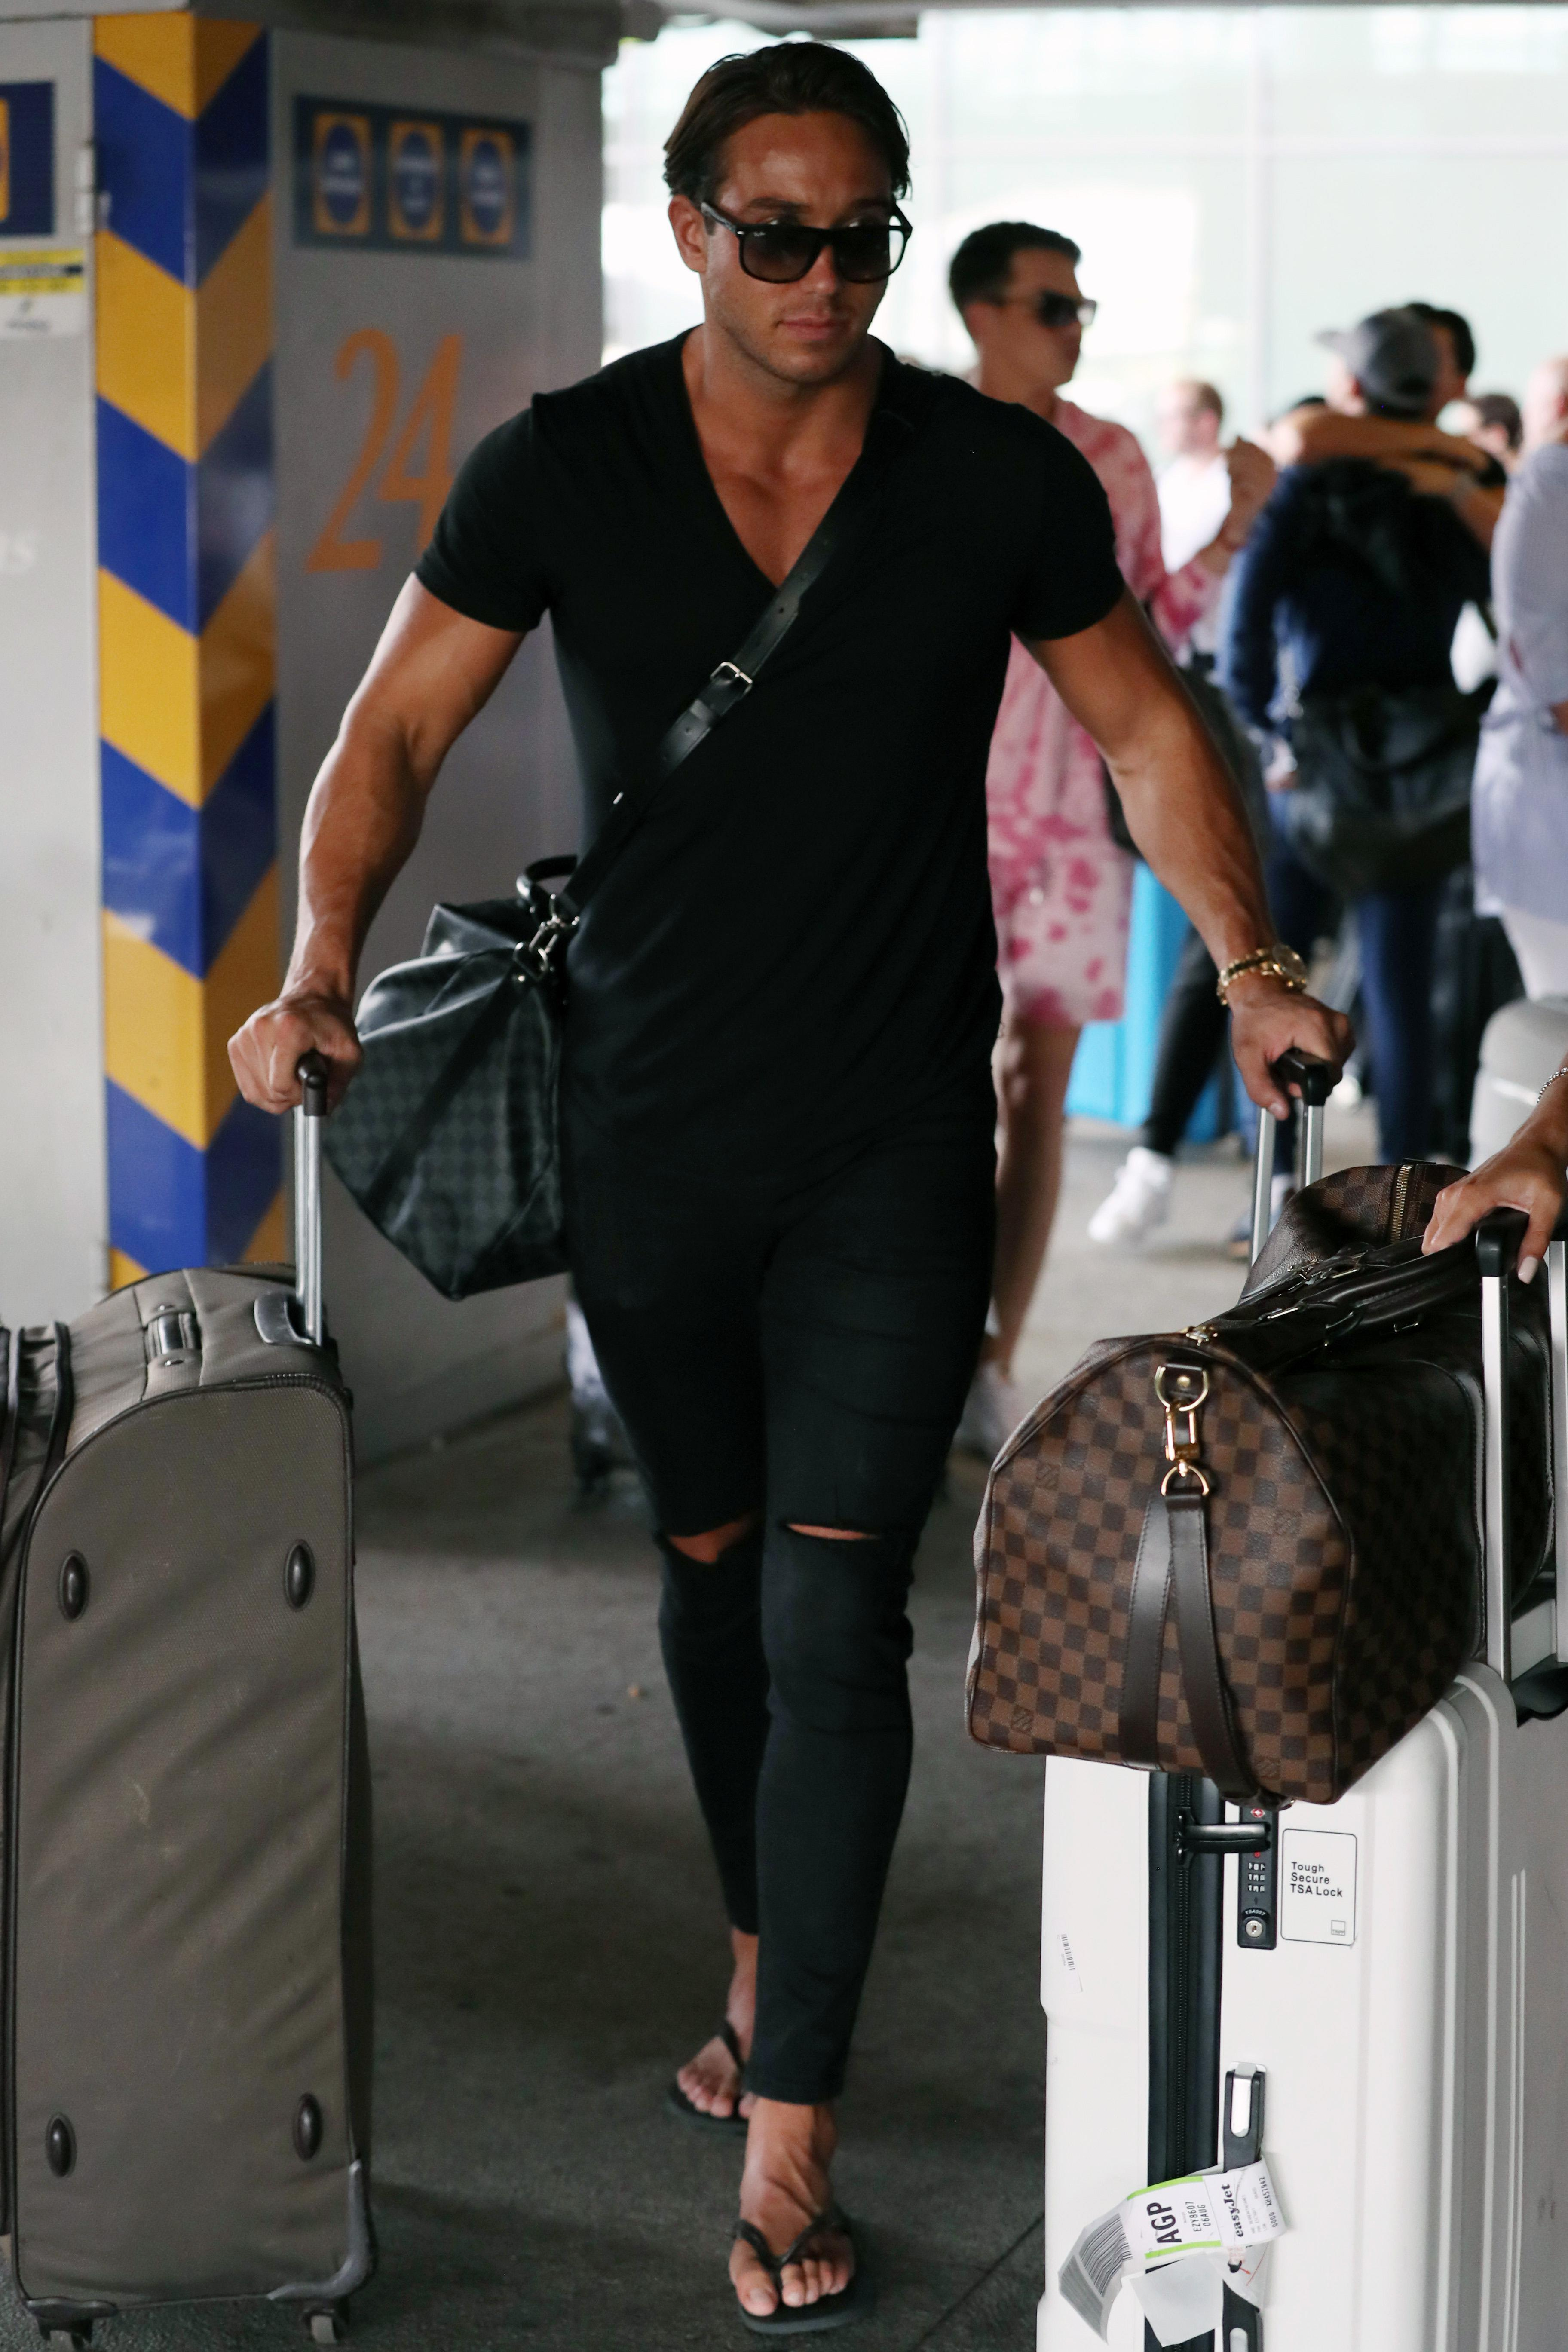 Towie's James Lock begs bosses to send cast to Dubai instead of 'Tenegrief'